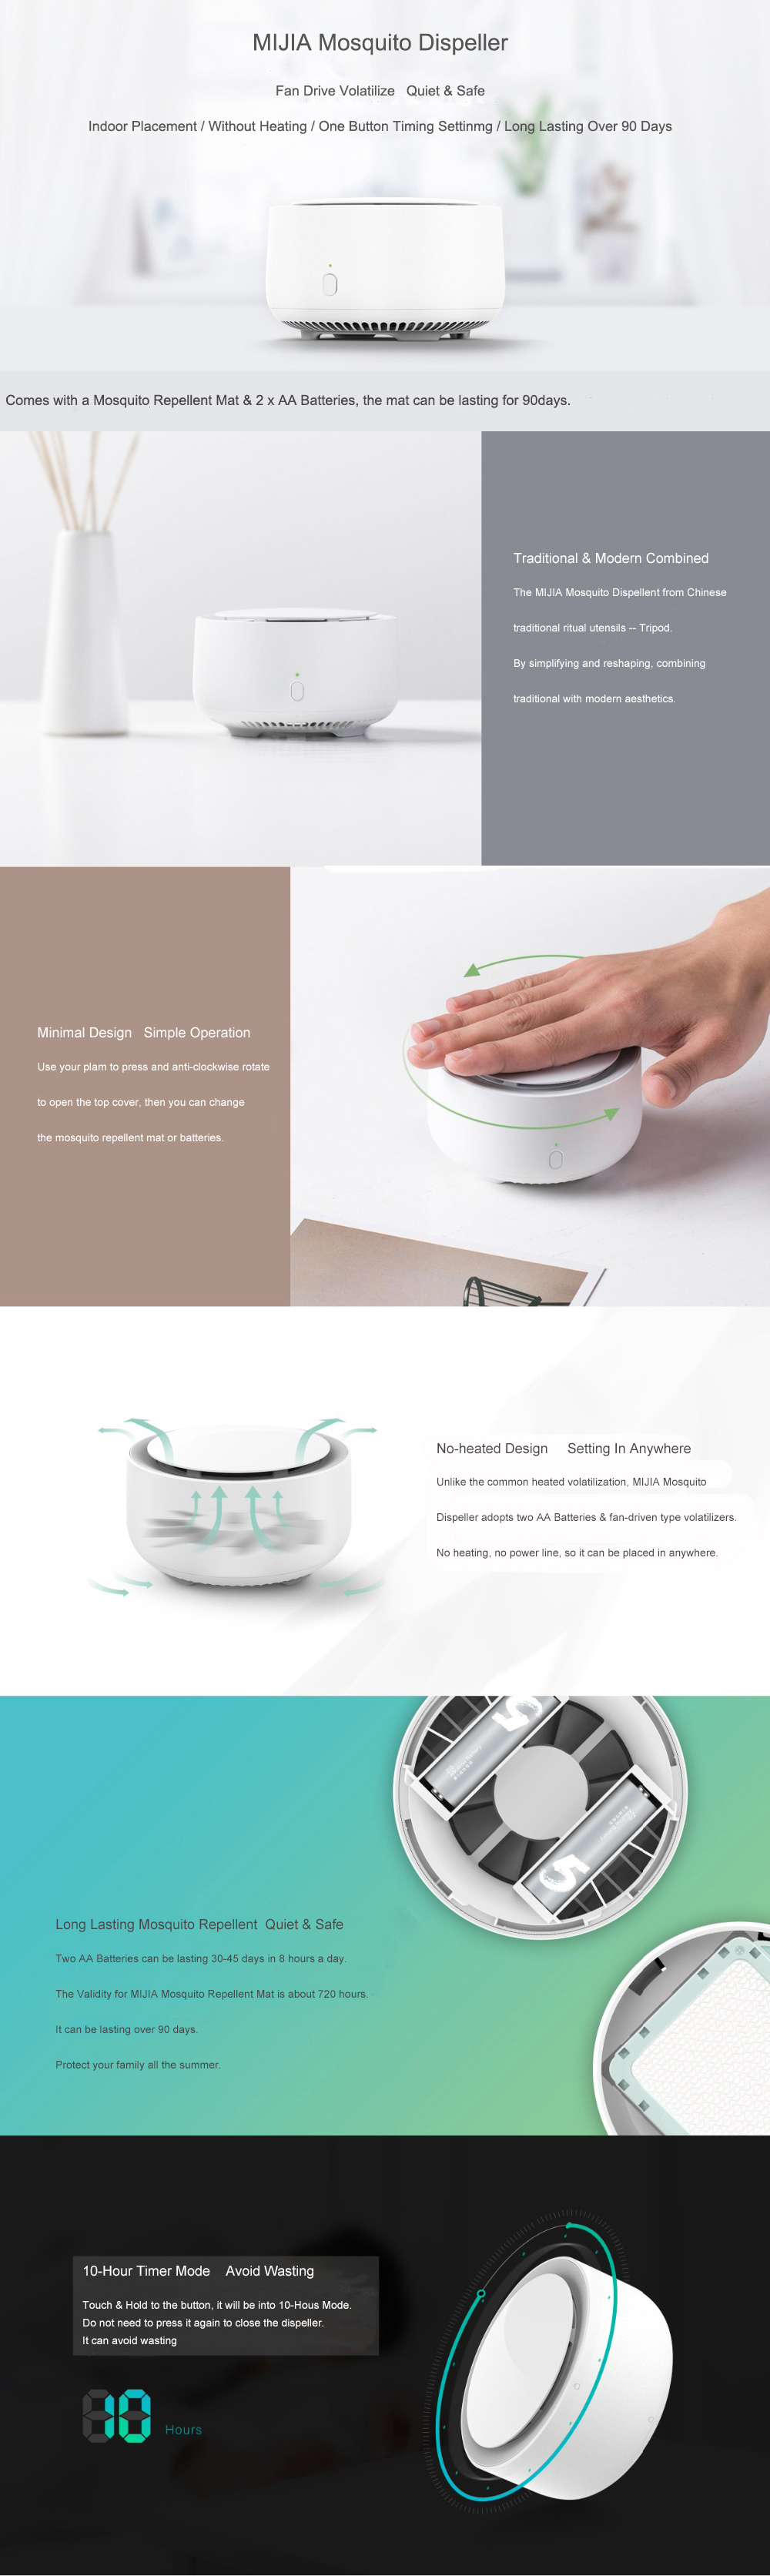 XIAOMI MIJIA Original Garden Electric Household Mosquito Dispeller Harmless Mosquito Insect Repeller